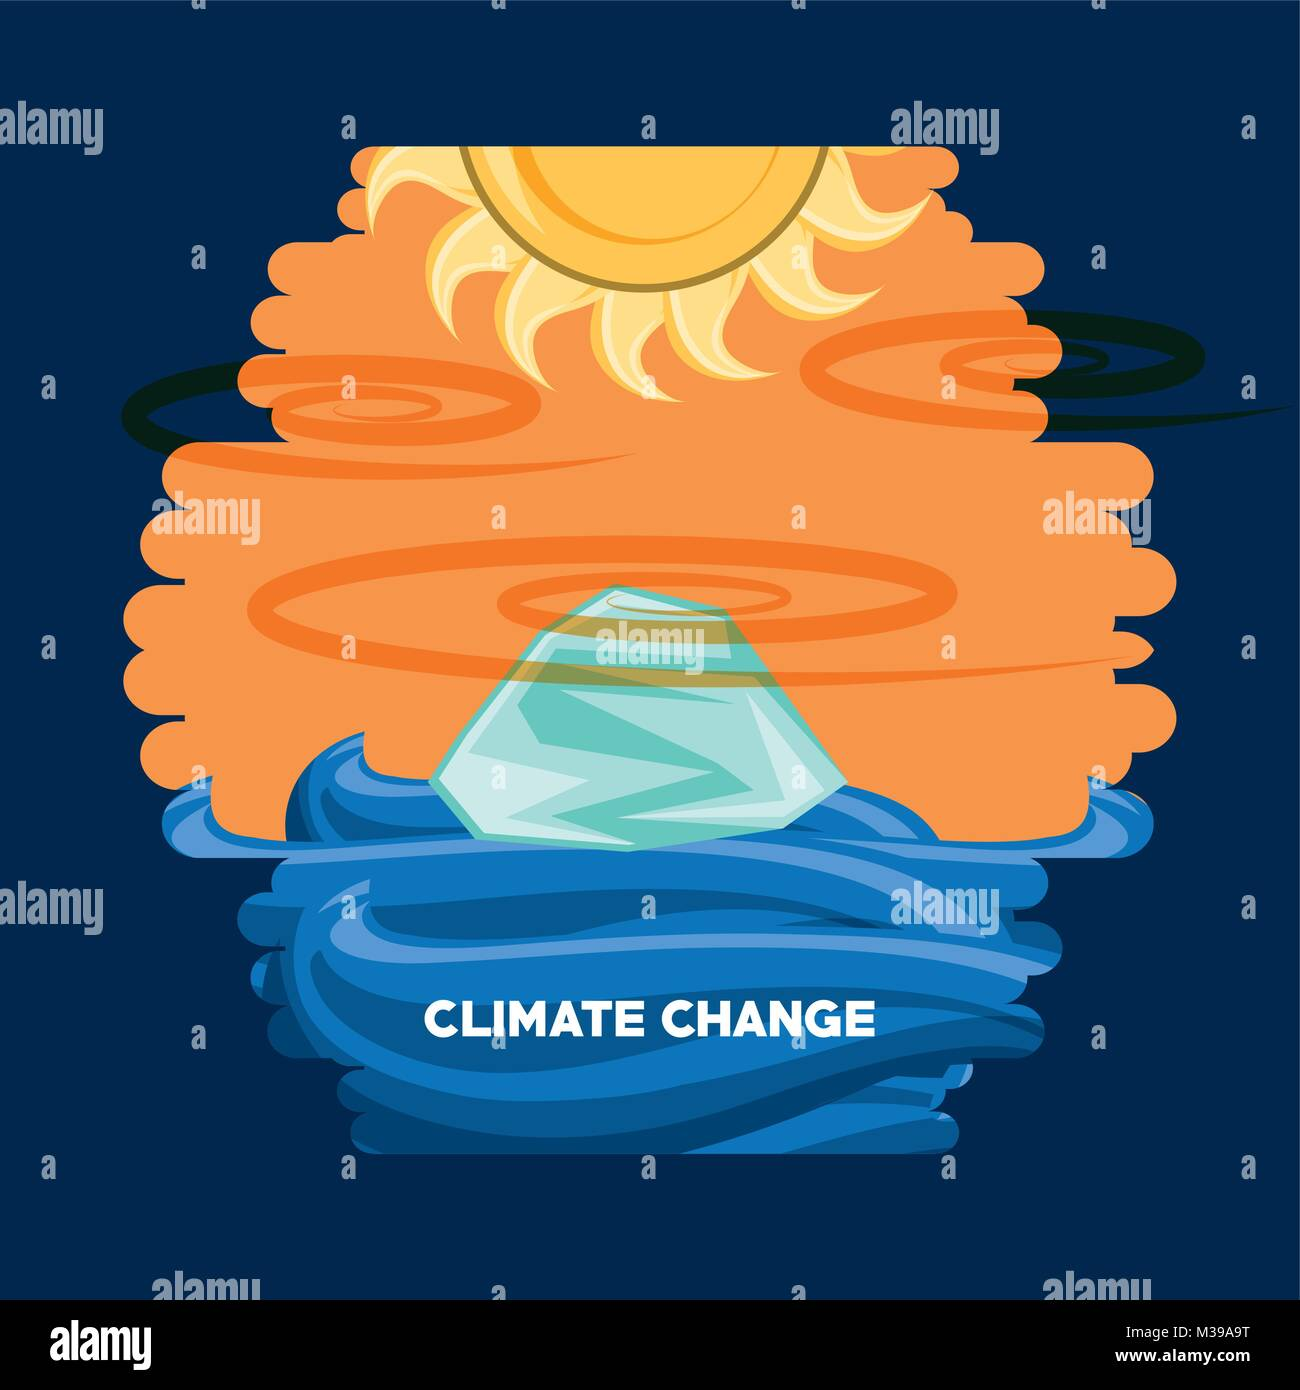 Climate change design - Stock Vector